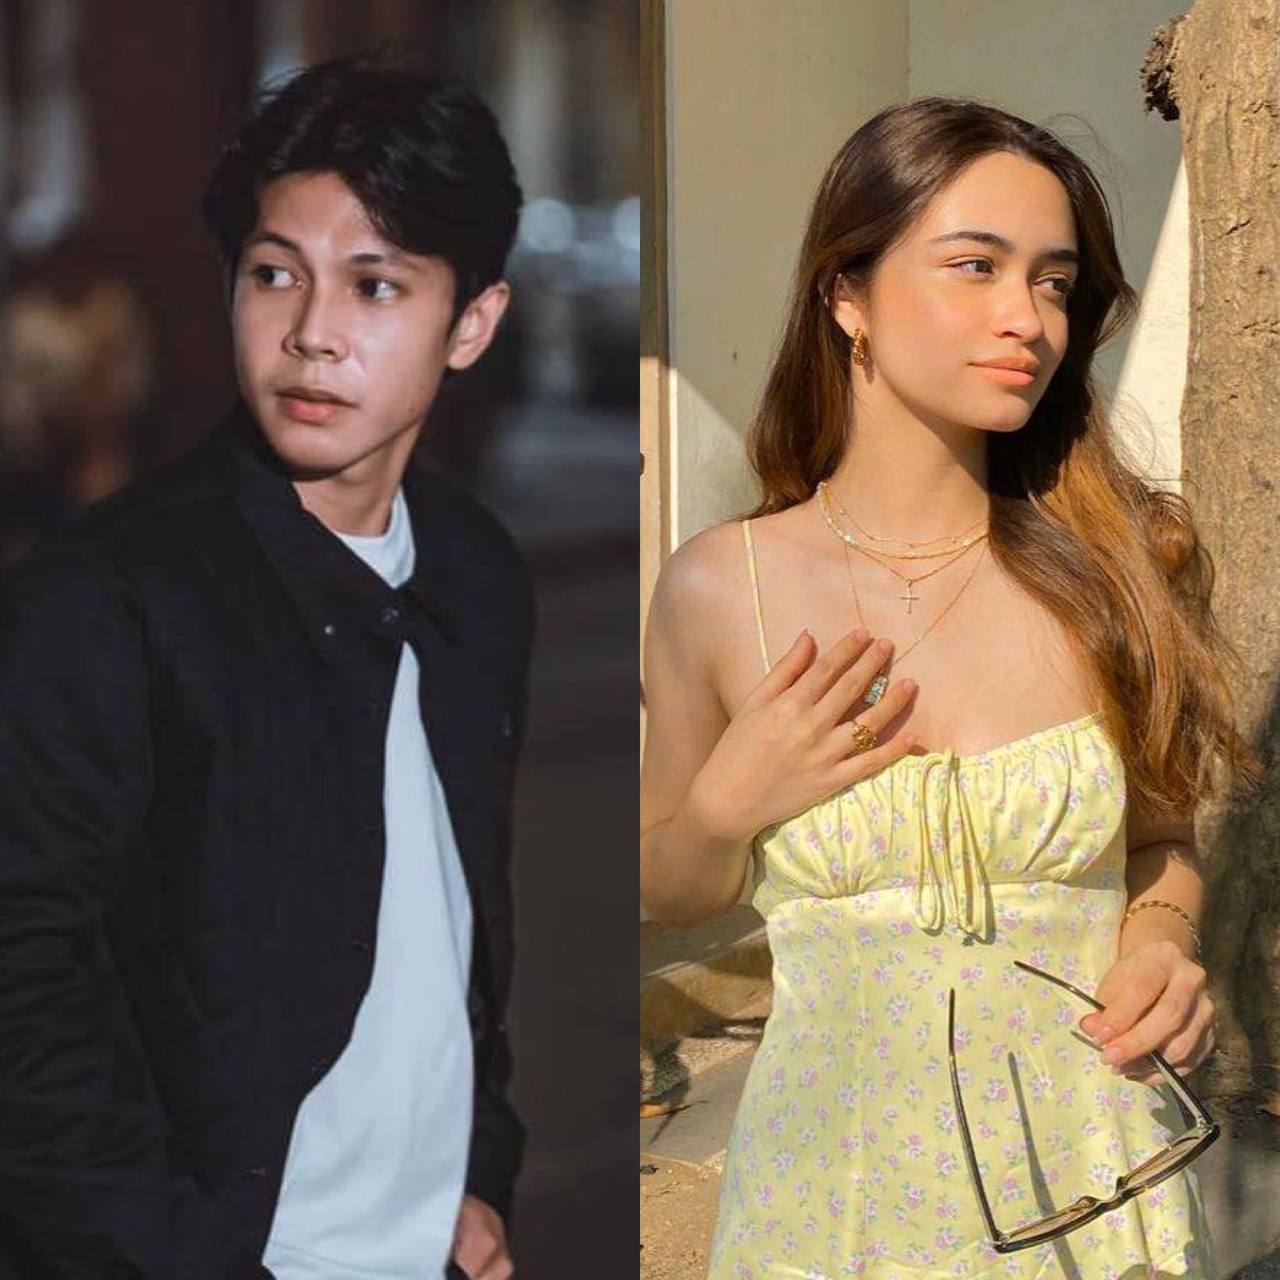 """Kyle Juliano and Angelina Cruz Team Up for Cover of """"You Are the Reason"""""""